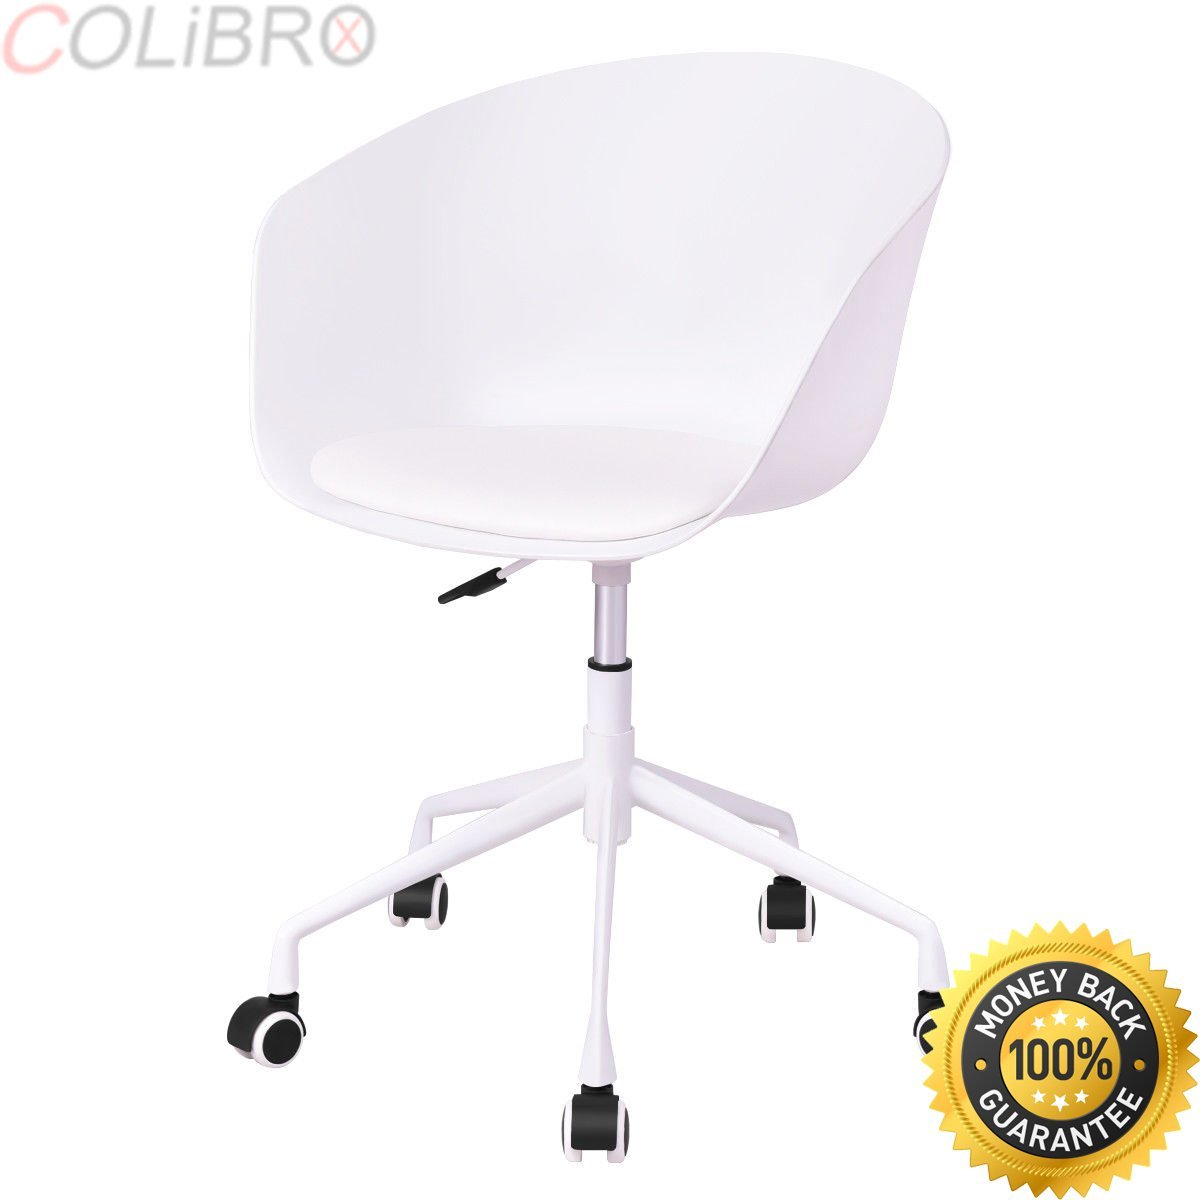 COLIBROX--Set of 2 Desk Chair PP Swivel Height Adjustable Rolling Home Office Task White.office chairs on sale.amazon best rolling office chair.white desk chair.desk chair amazon.rolling chair amazon.